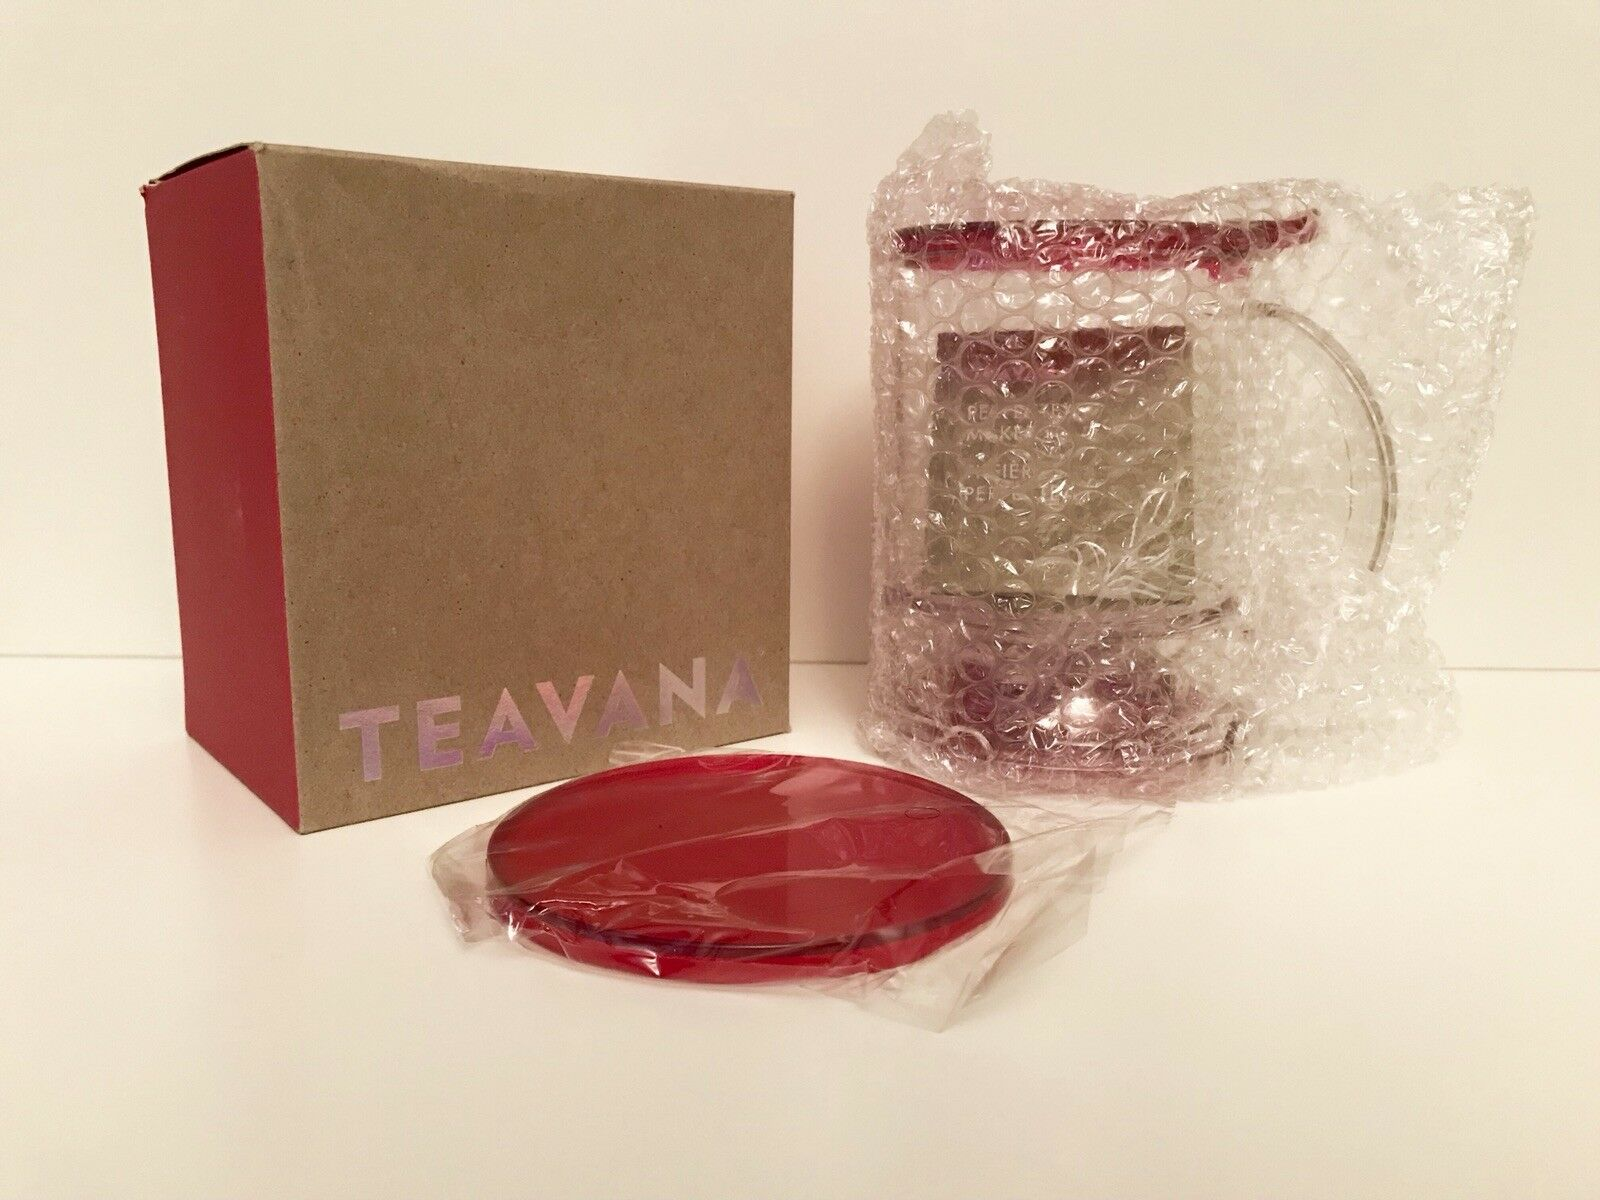 TEAVANA Dark Red Perfectea Maker  - RARE Edition - FACTORY N